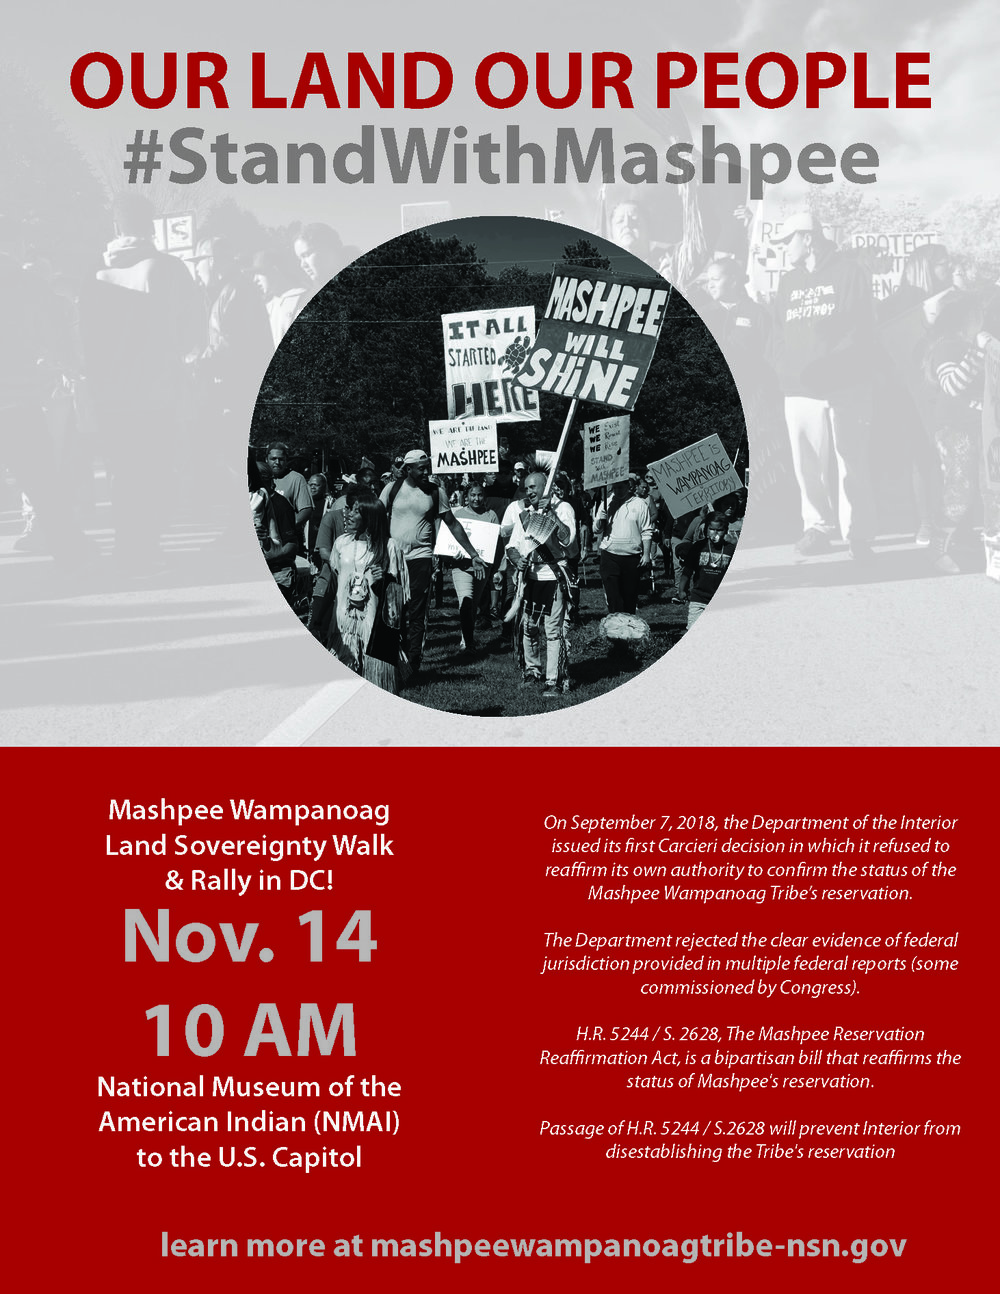 The Mashpee Wampanoag Tribe will be staging a walk in Washington DC to protest a recent federal government decision that could lead to the loss of its sovereign reservation. The Mashpee Wampanoag Land Sovereignty Walk and Rally will be held on Wednesday, November 14 at 10:00 a.m. and will go from the National museum of the American Indian to the U.S. Capitol in Washington DC.  This walk is on the heels of a walk held last month that went through part of the Tribe's ancestral homeland in Mashpee.